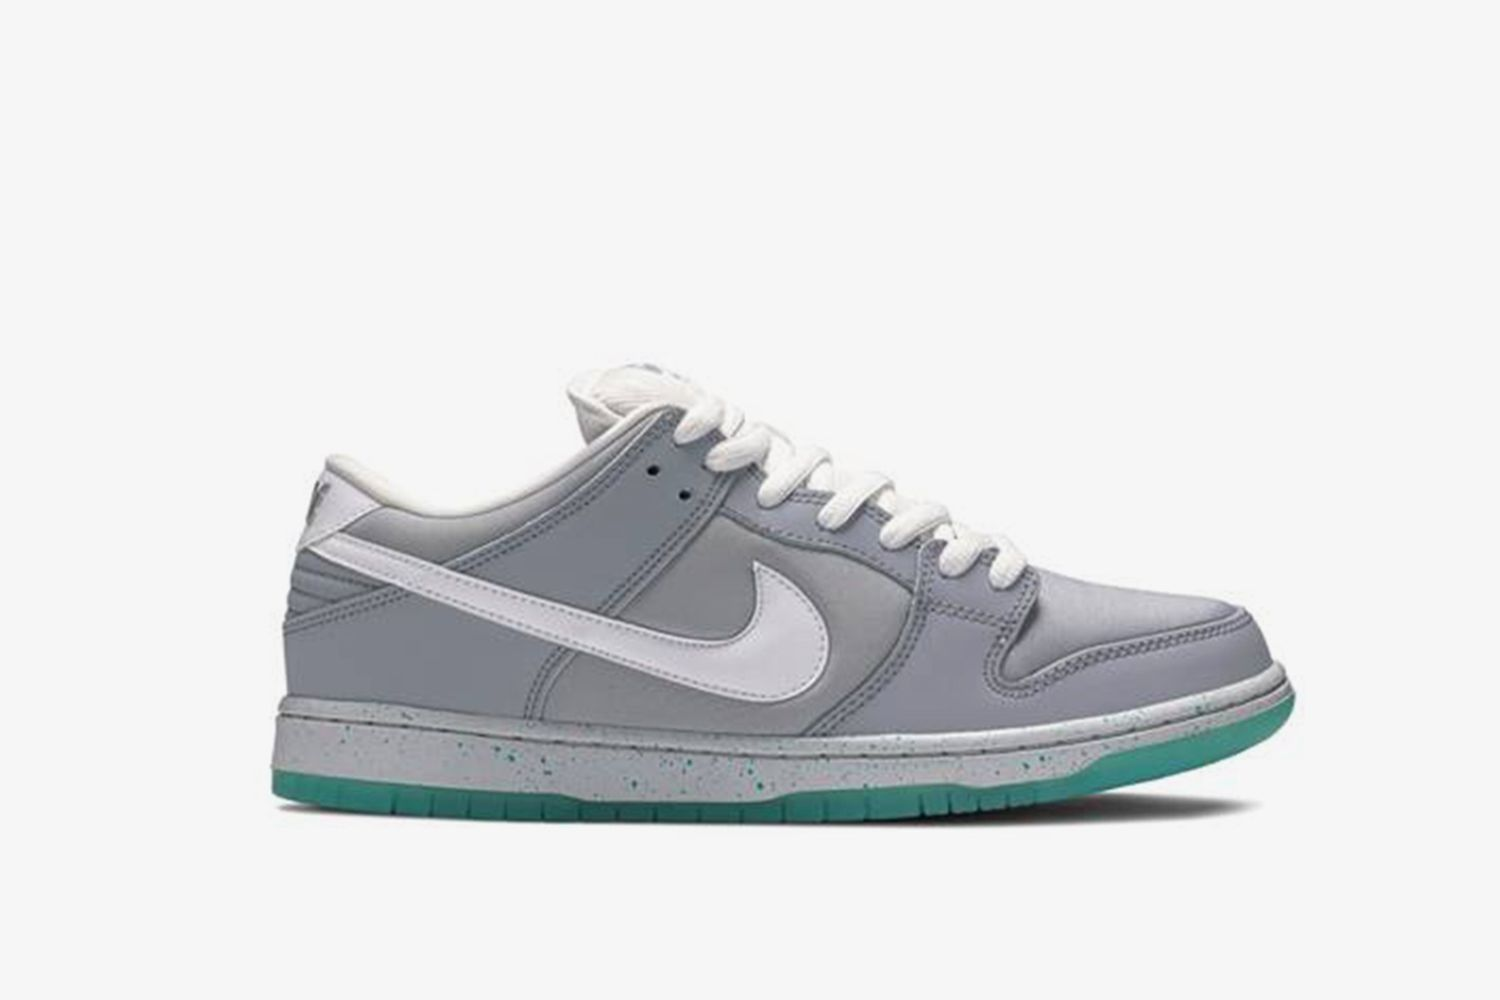 SB Dunk Low 'Marty McFly'